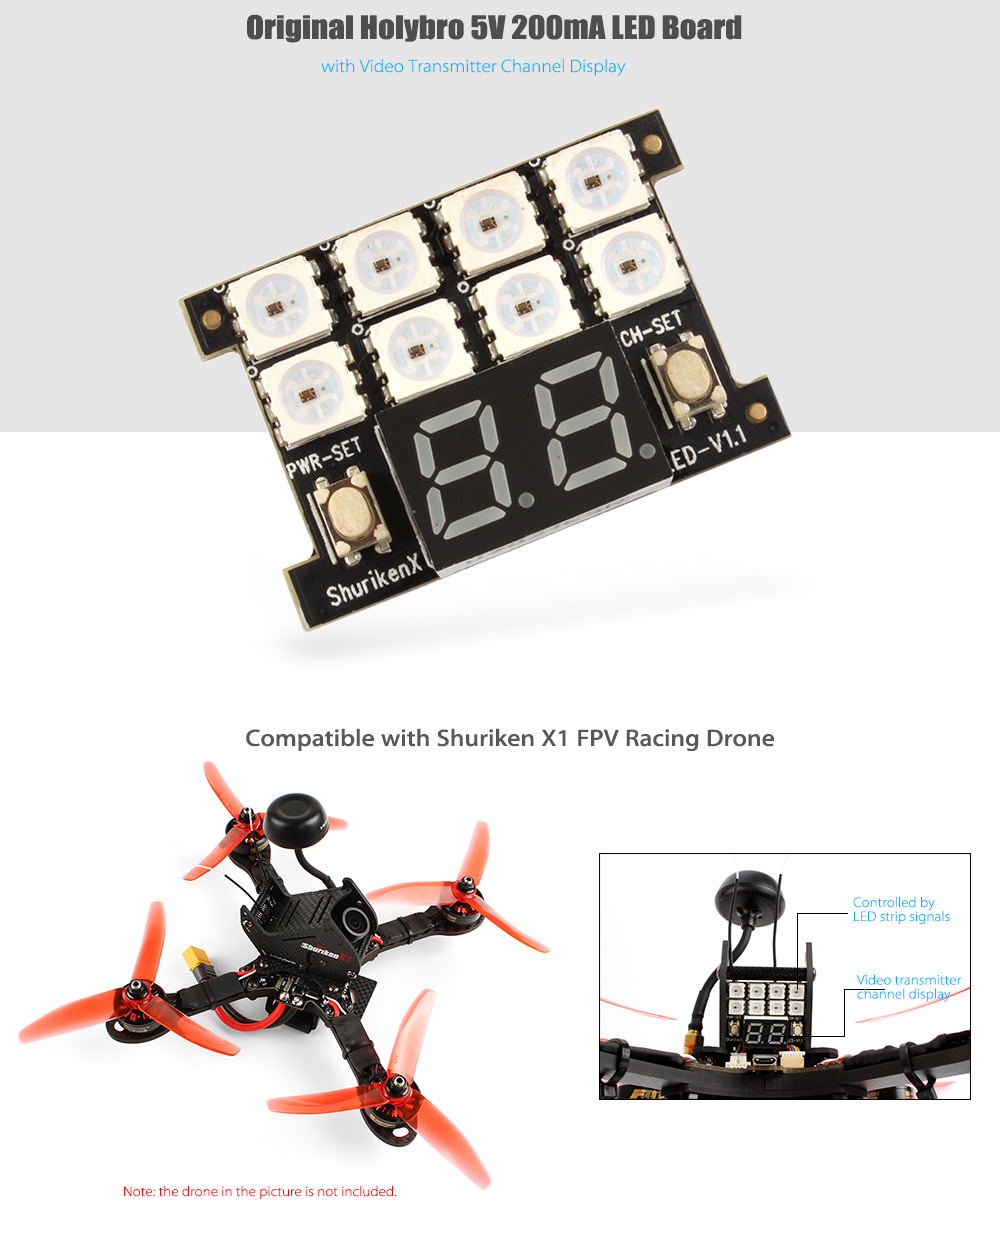 Original Holybro 5V 200mA LED Board with Video Transmitter Channel Display for Shuriken X1 RC Racing Drone